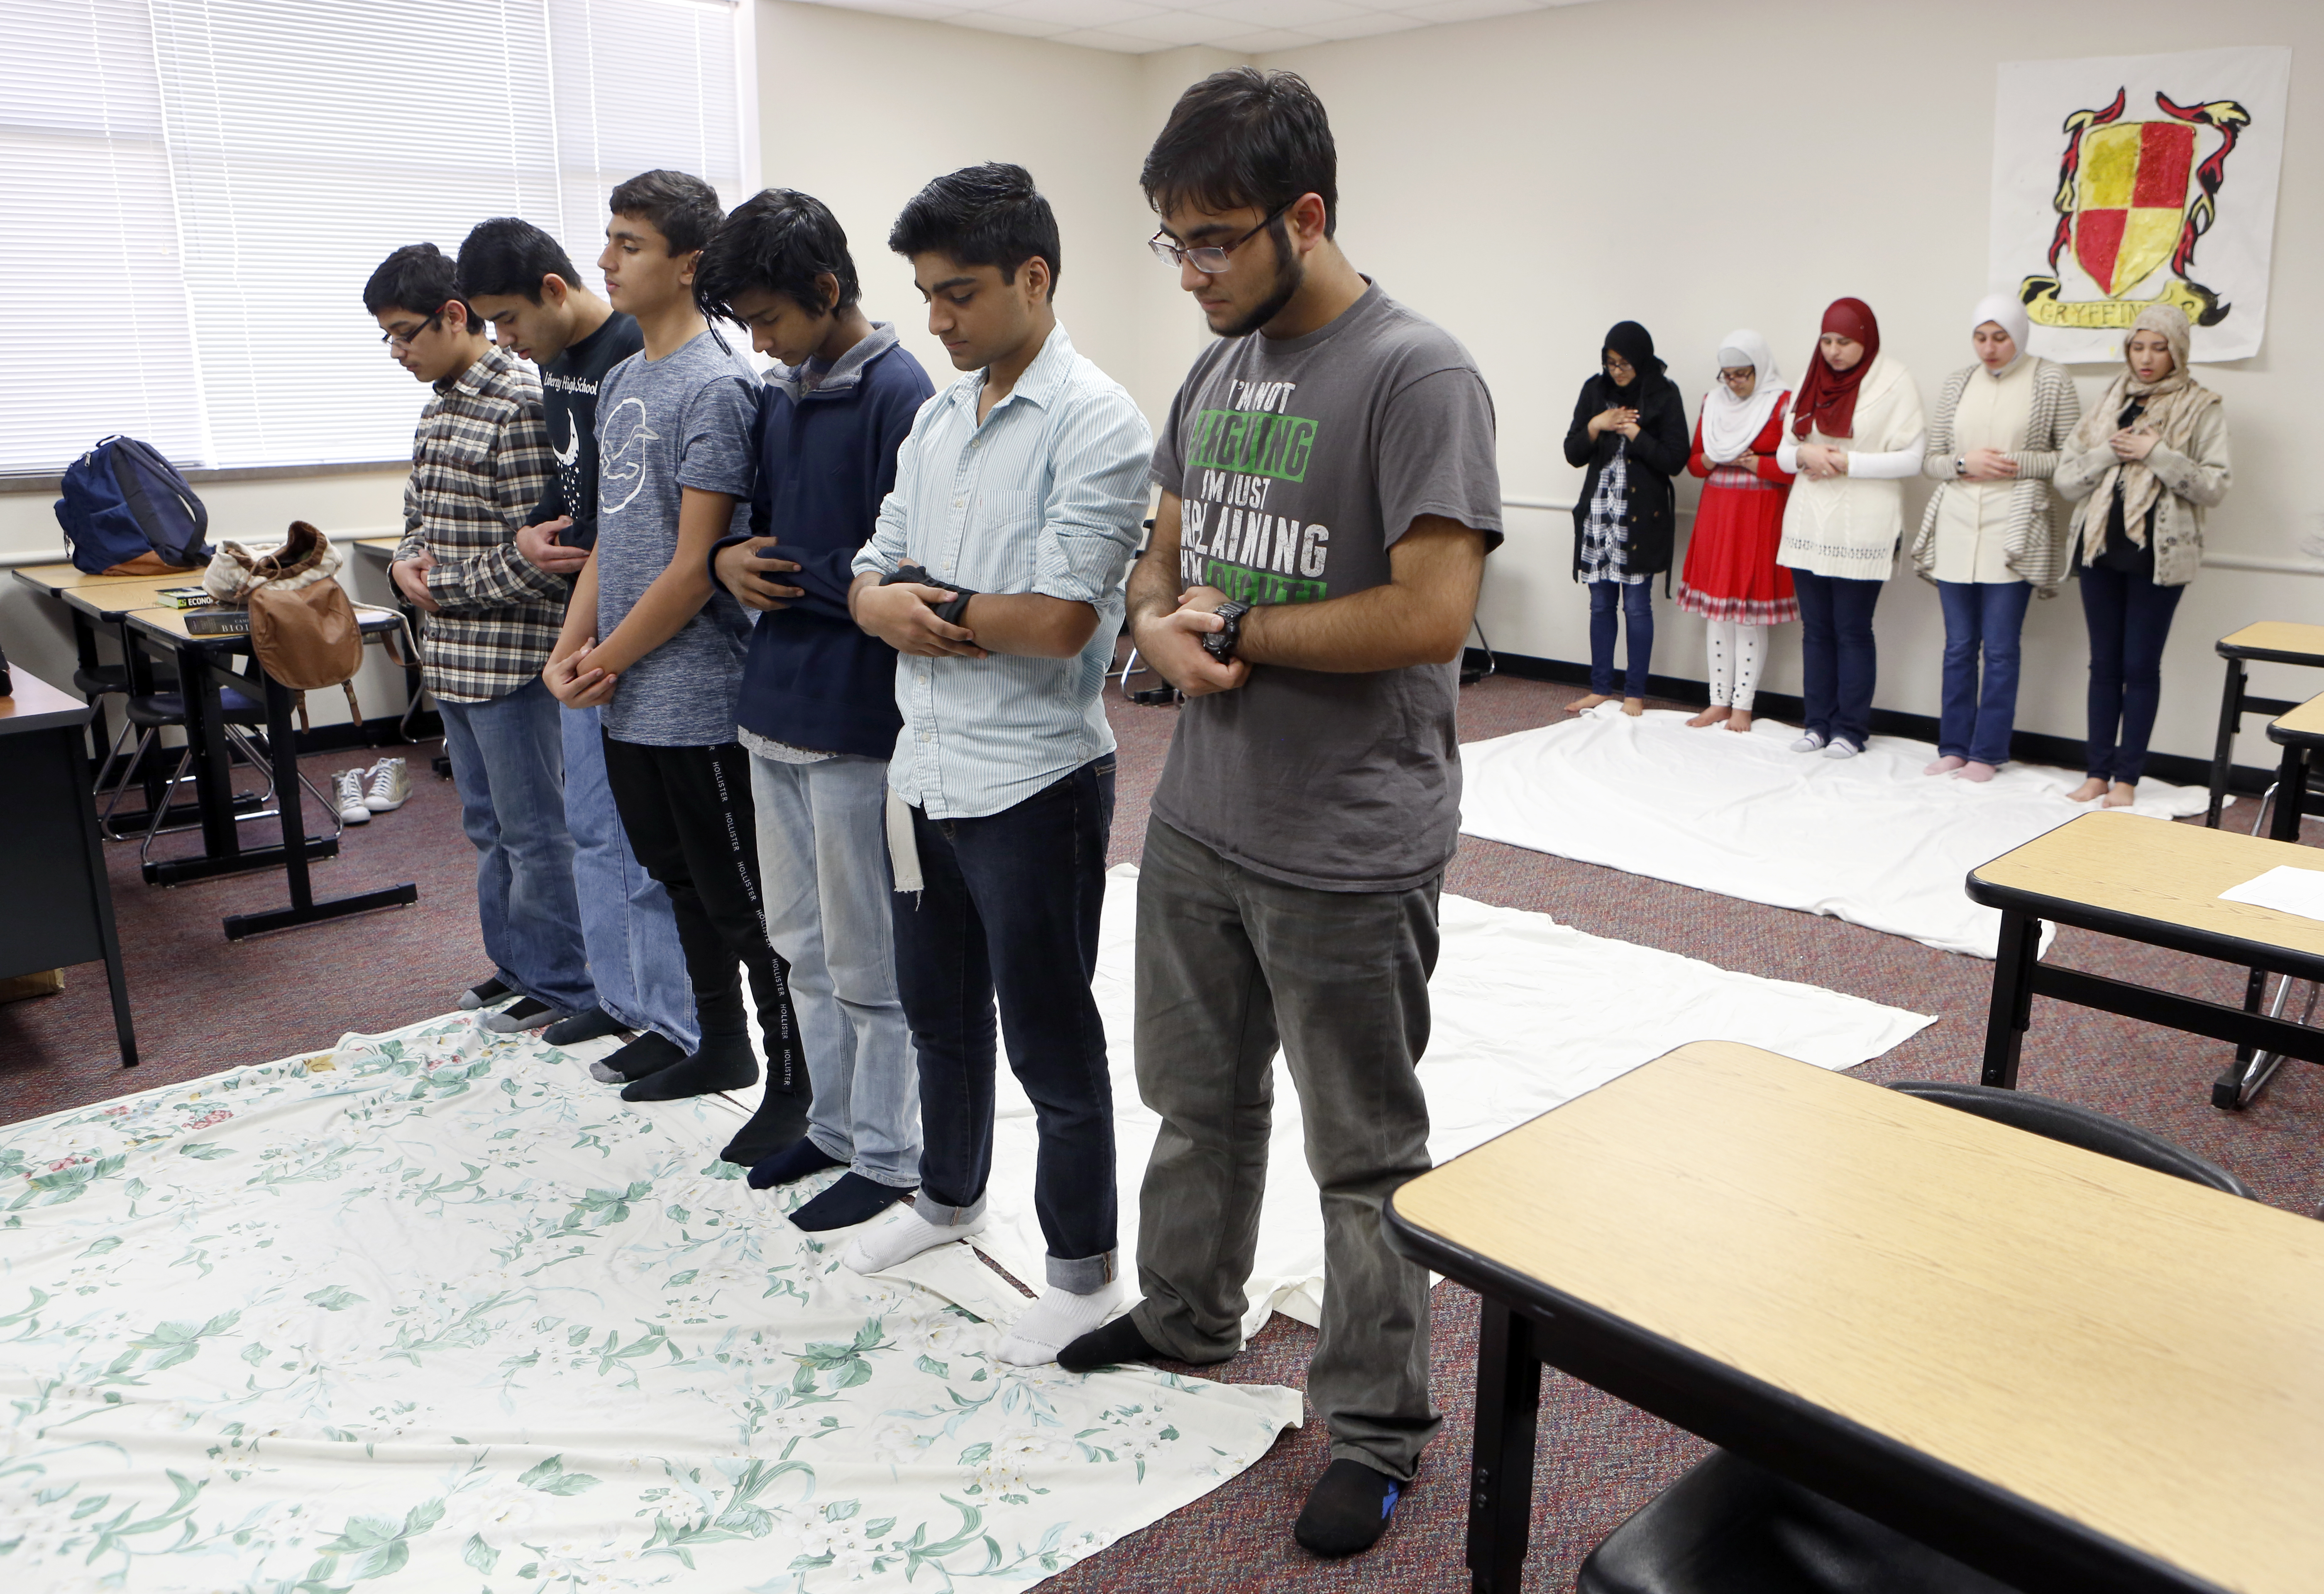 Prayer Rooms Are One Way Public Schools Accommodate